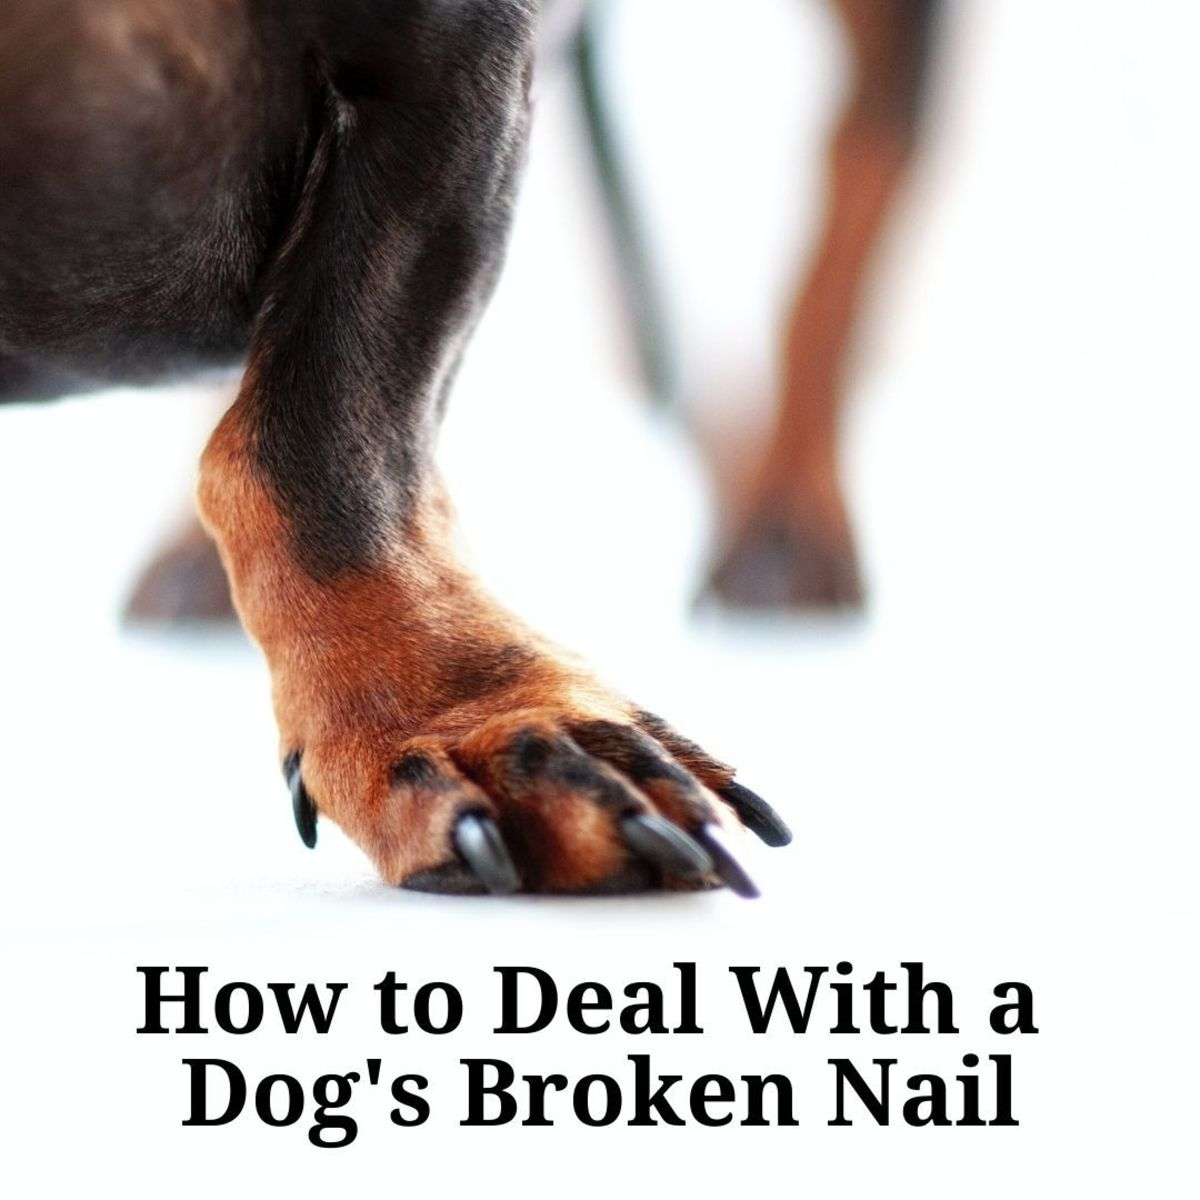 Vet Approved Tips for Dealing With a Dog's Broken Nail   PetHelpful